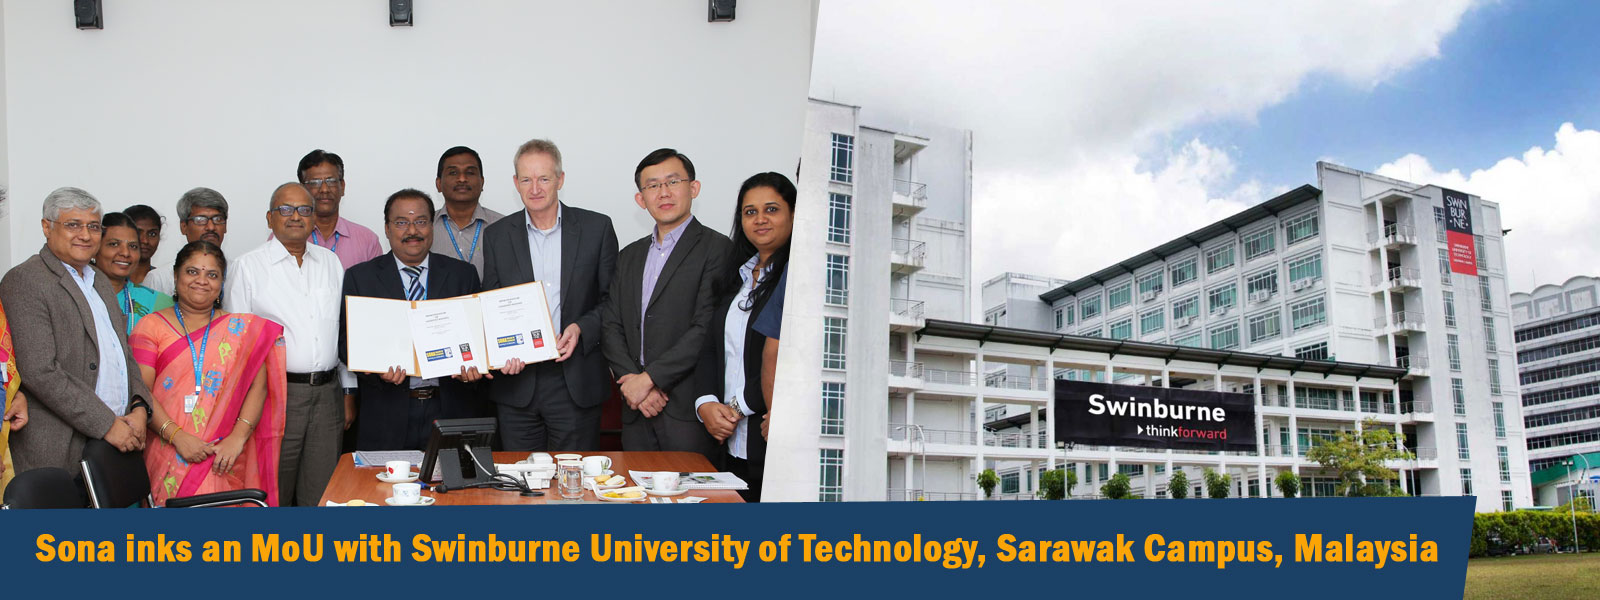 Sona inks an MoU with Swinburne college of technology, malaysia.